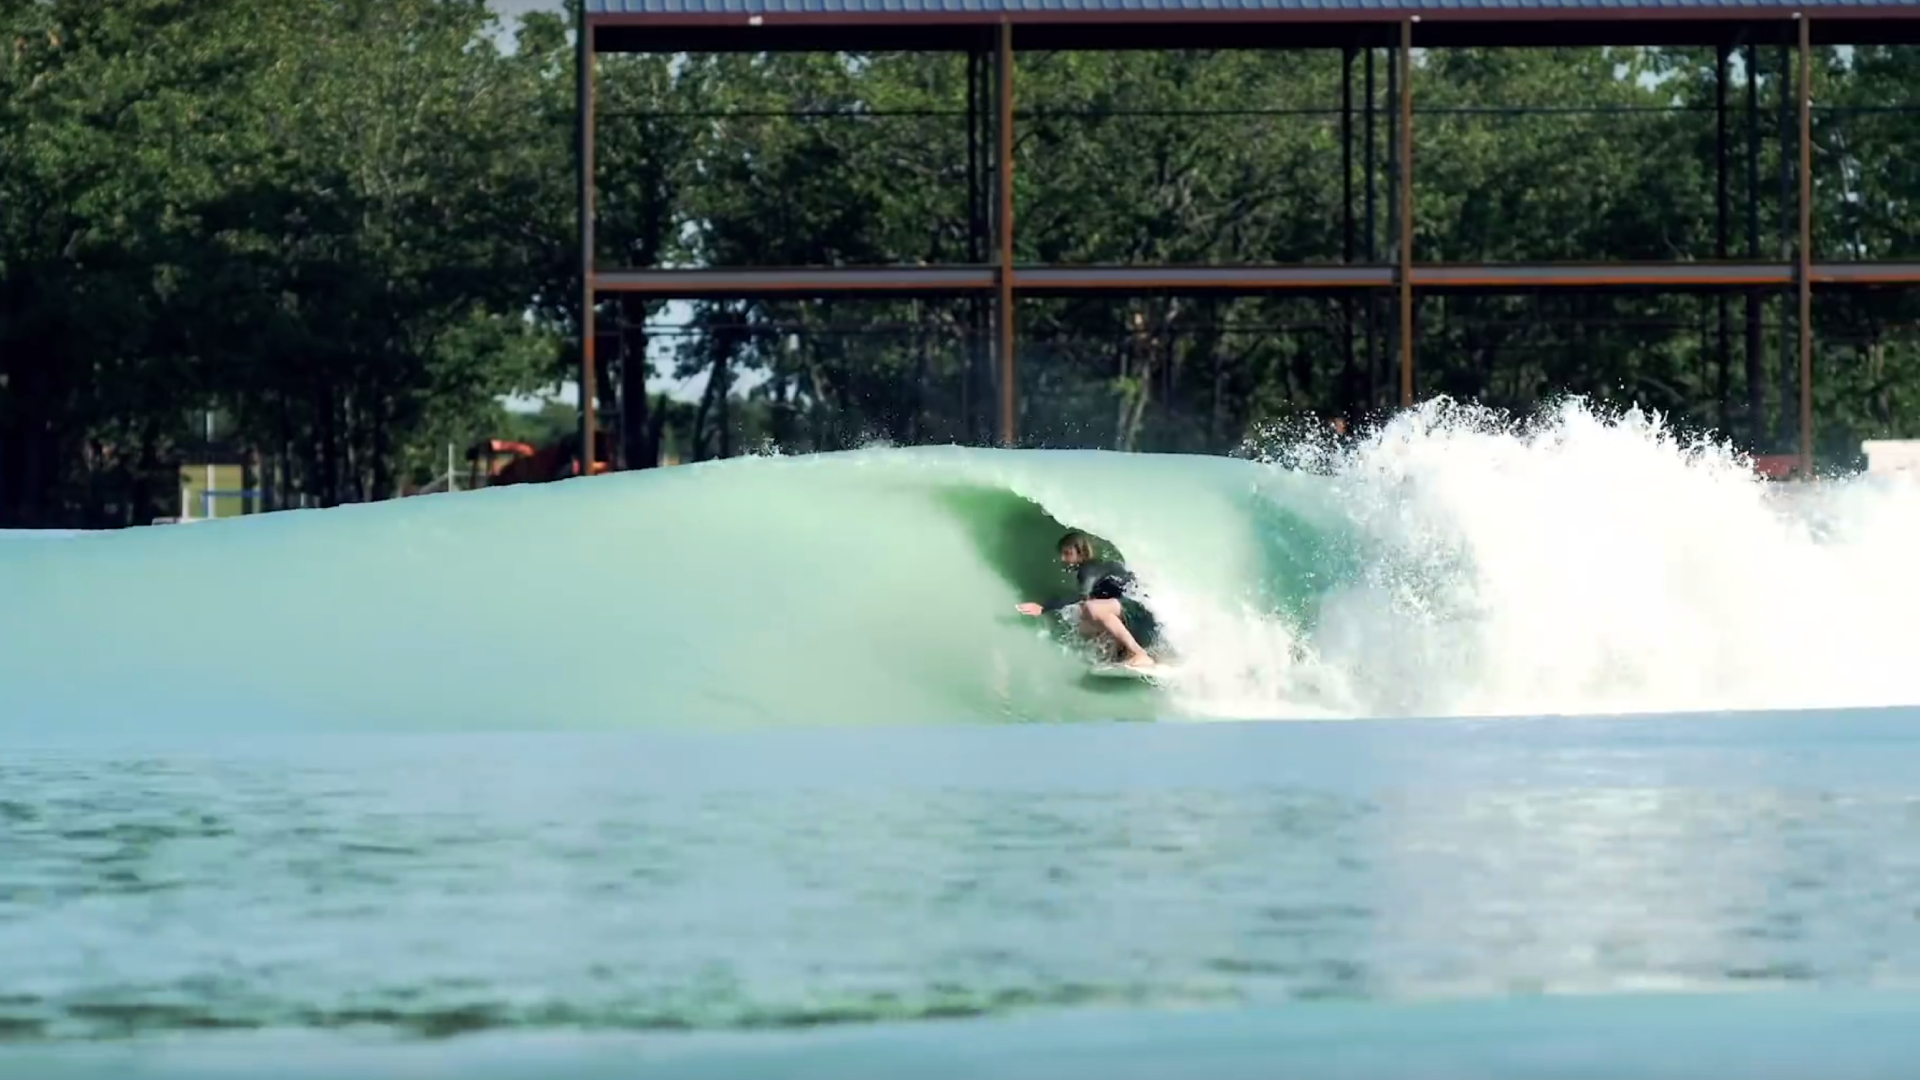 Tyler Warren tubed at the Waco wave pool